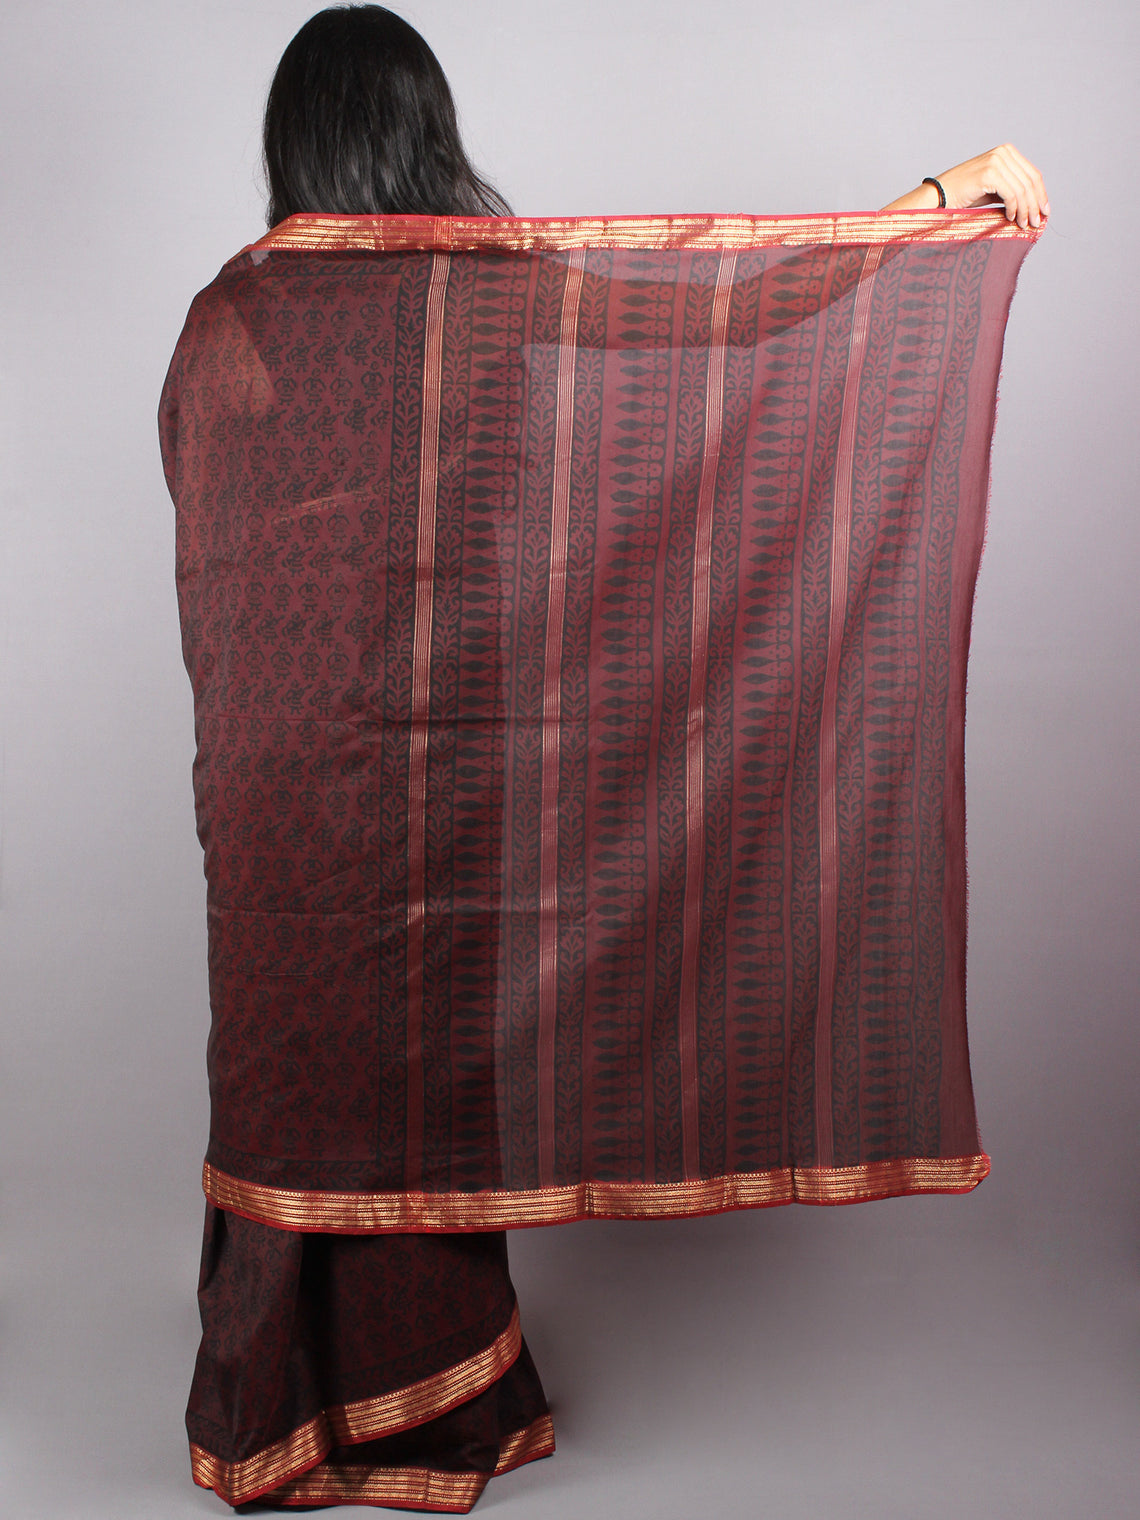 Mahroon Black Mono Chanderi  Hand Block Printed Saree with Zari Border - S0317213